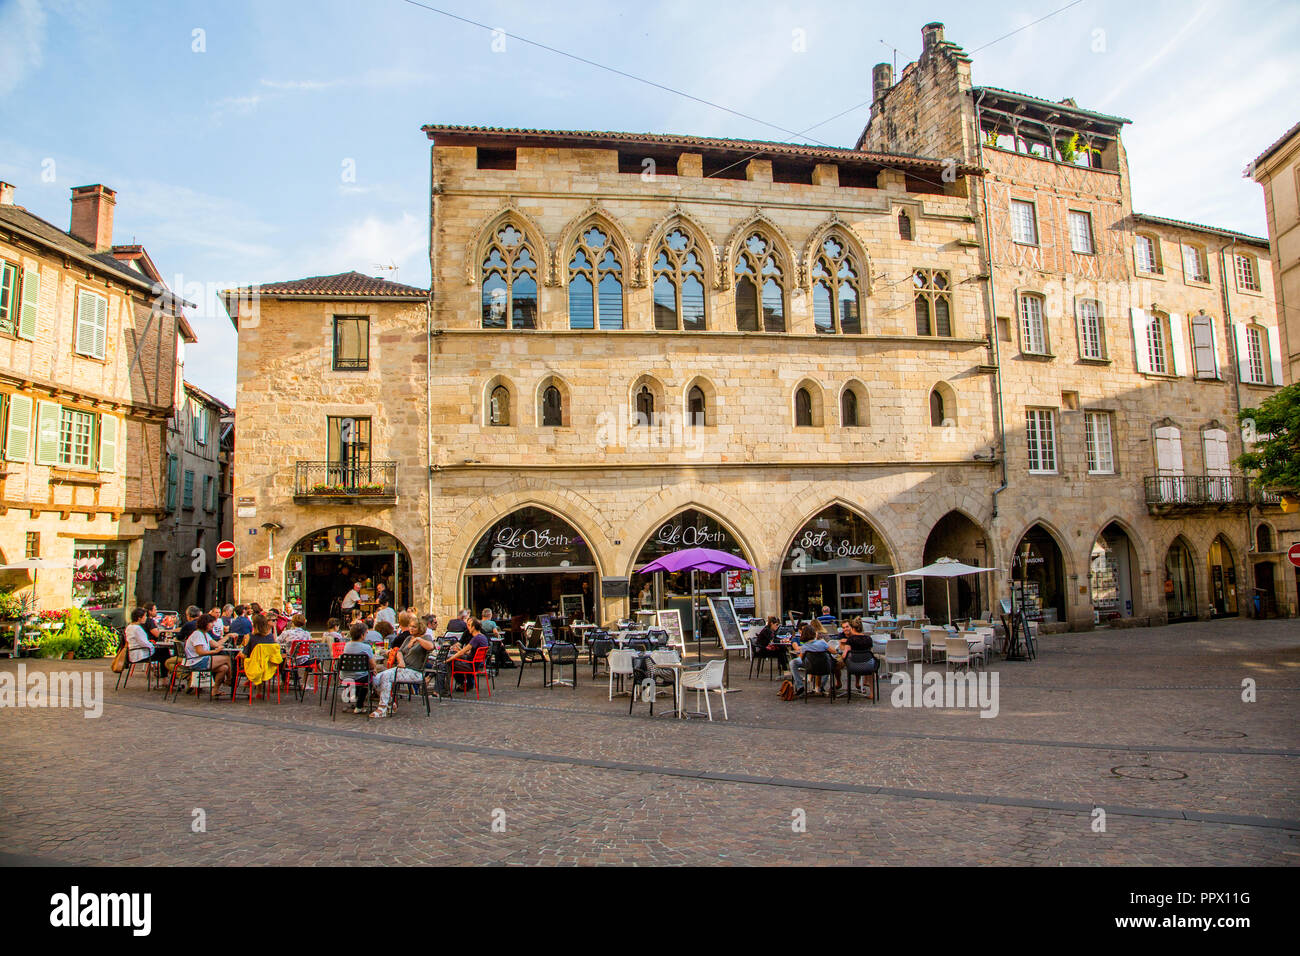 Location Figeac Cafe In Historic Place Champollion In Figeac France Stock Photo